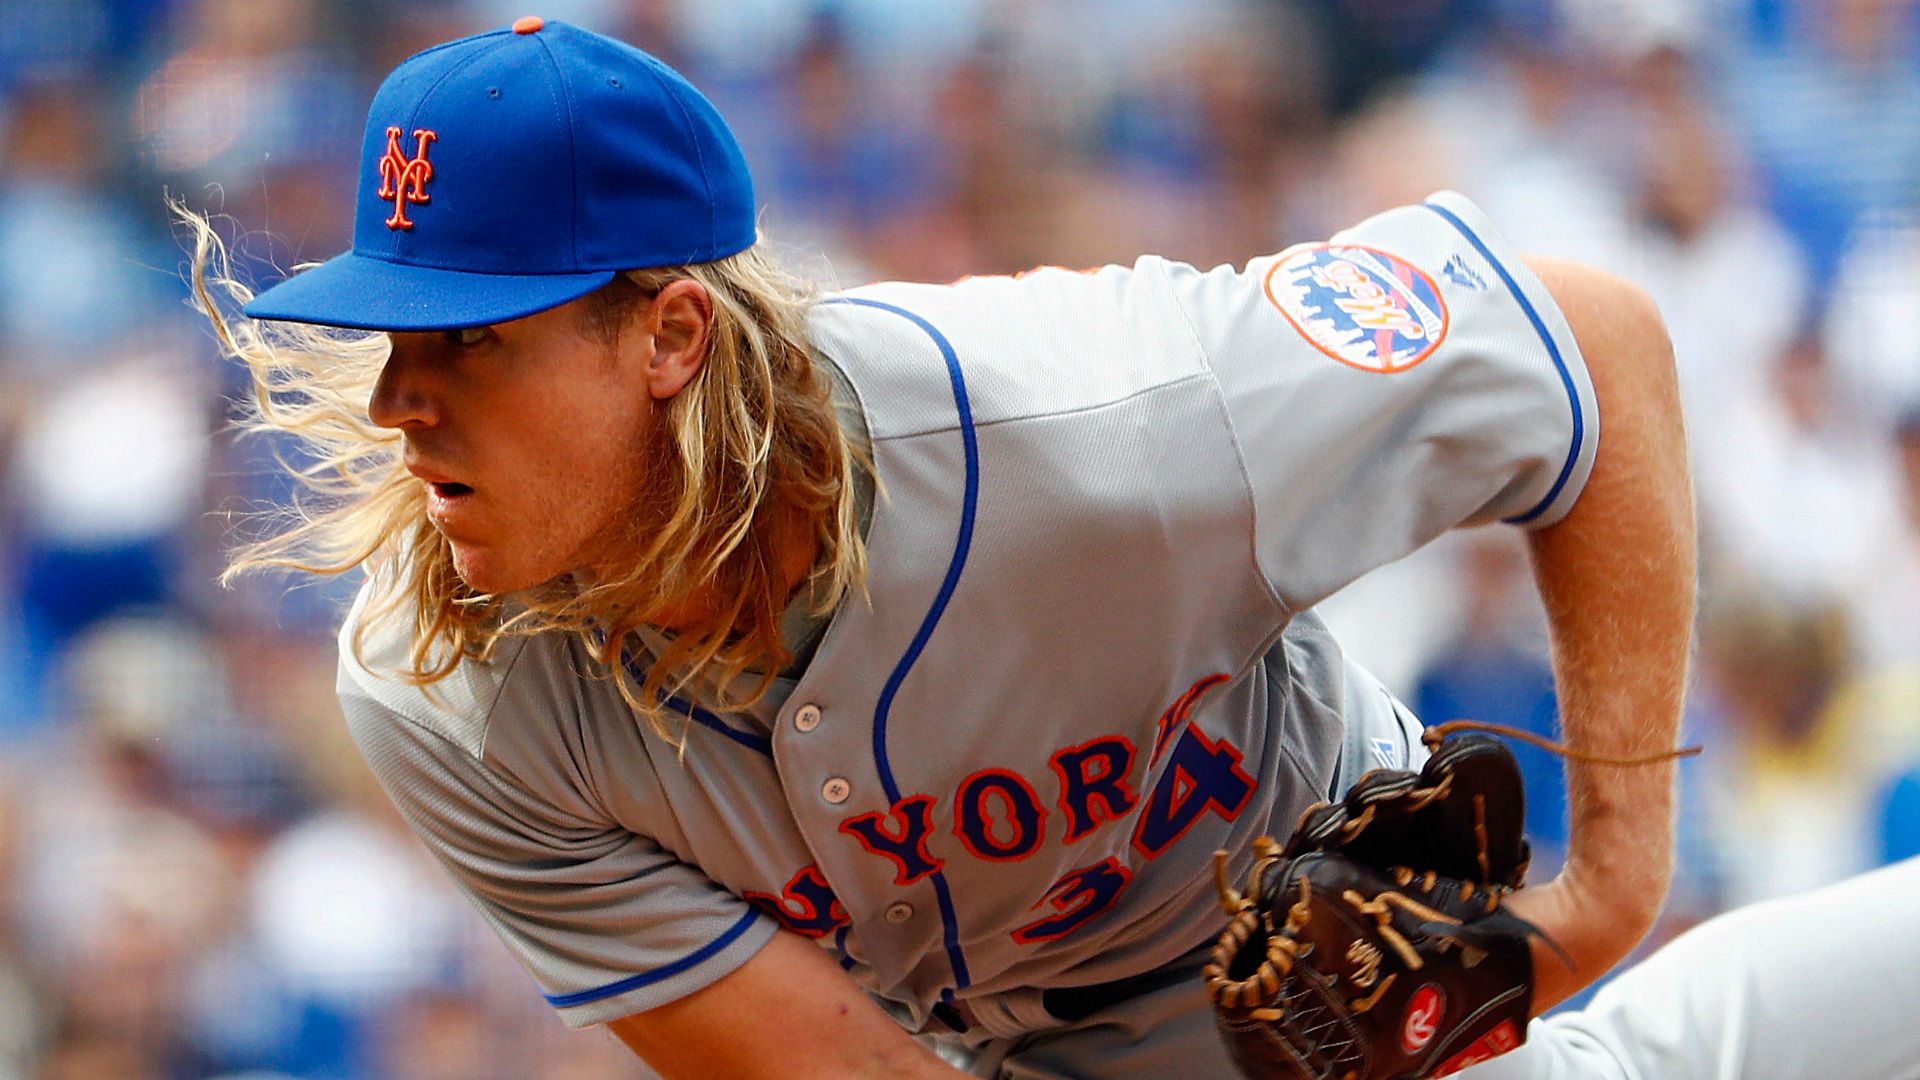 Noah Syndergaard's new cutter baffles baseball world - Business ...